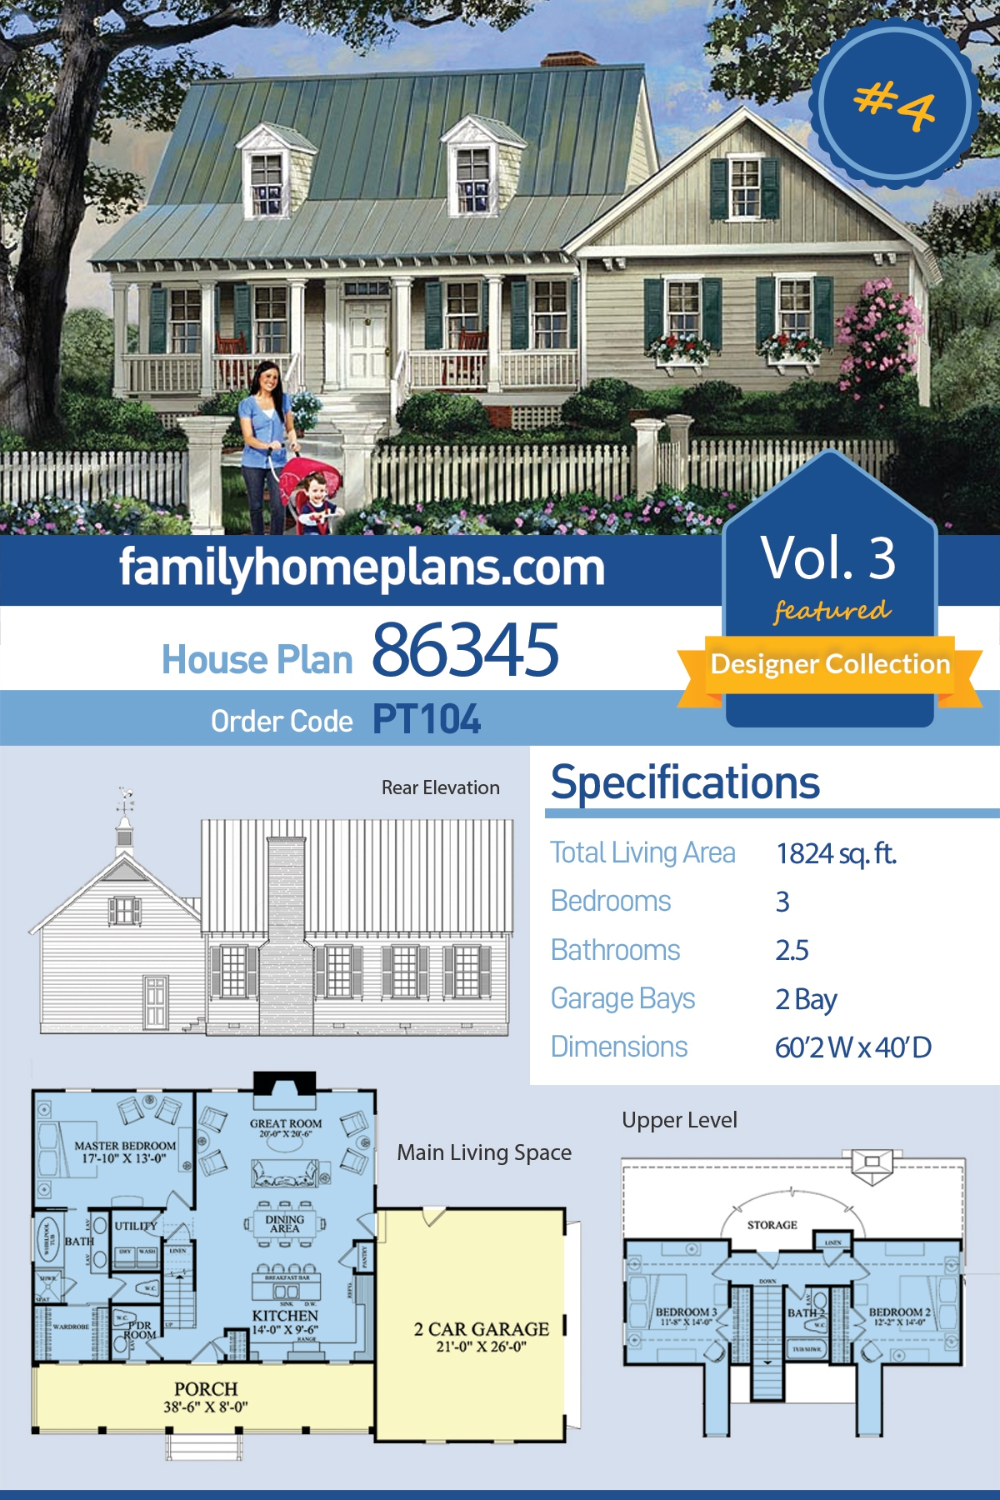 Southern Style House Plan 86345 With 3 Bed 3 Bath 2 Car Garage Family House Plans House Plans Country House Plans